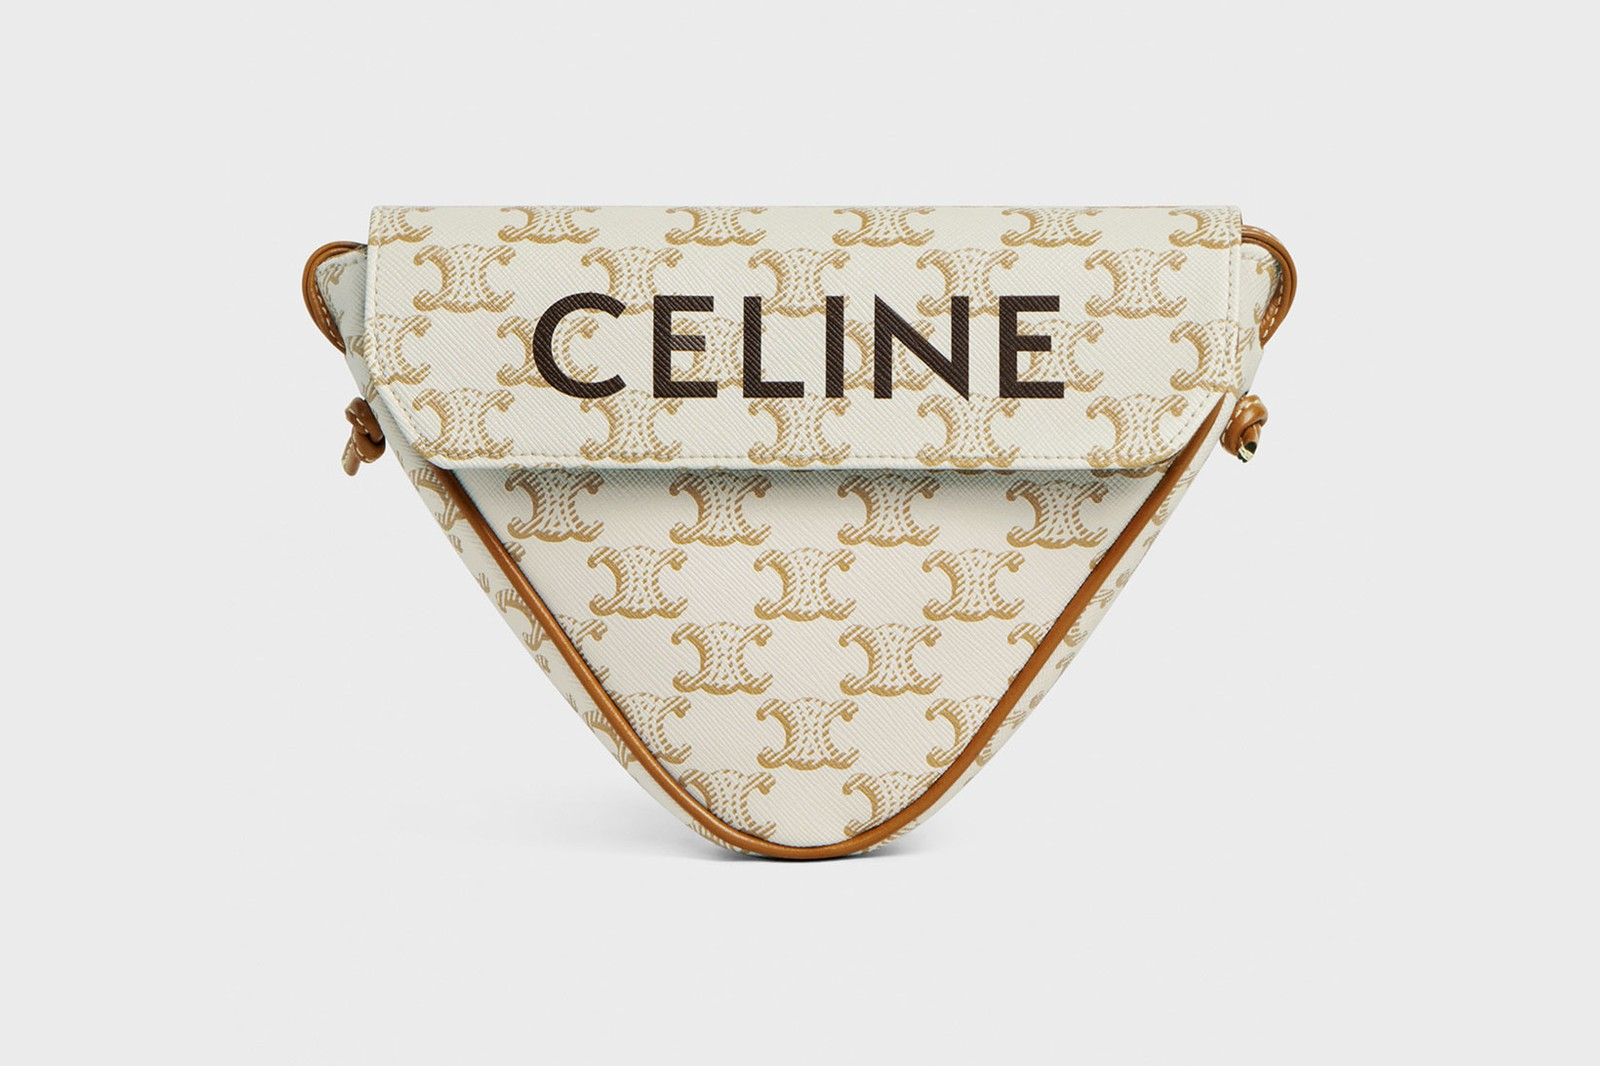 celine homme triangle bag spring summer collection leather accessories white black monogram